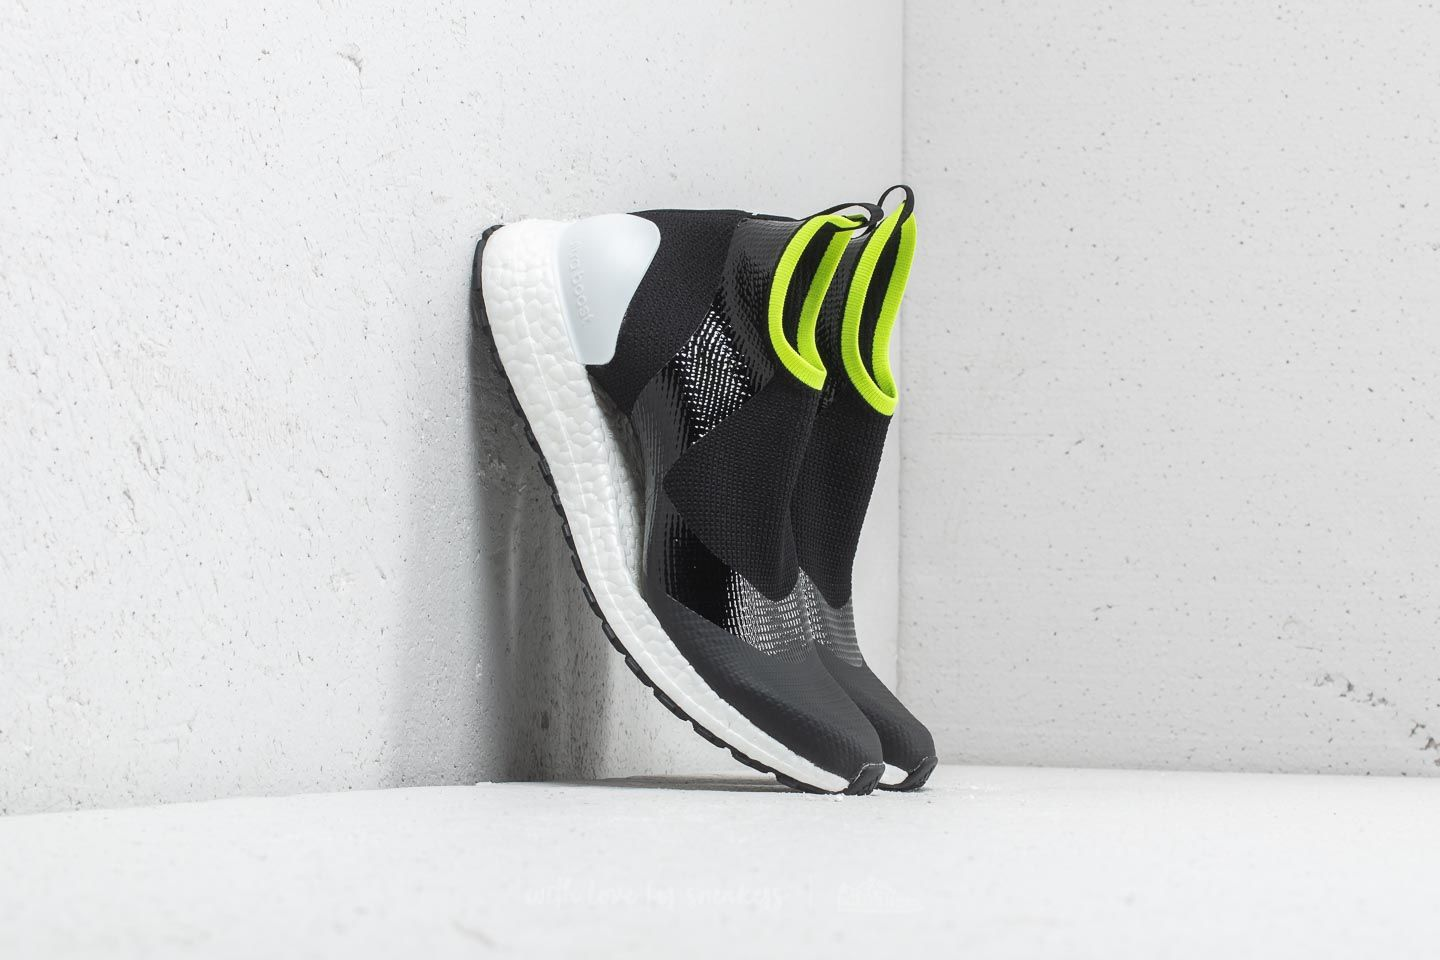 4a34cdd9bf76f adidas x Stella McCartney Ultraboost X All Terrain Core Black  Ftw White   Solar Slime